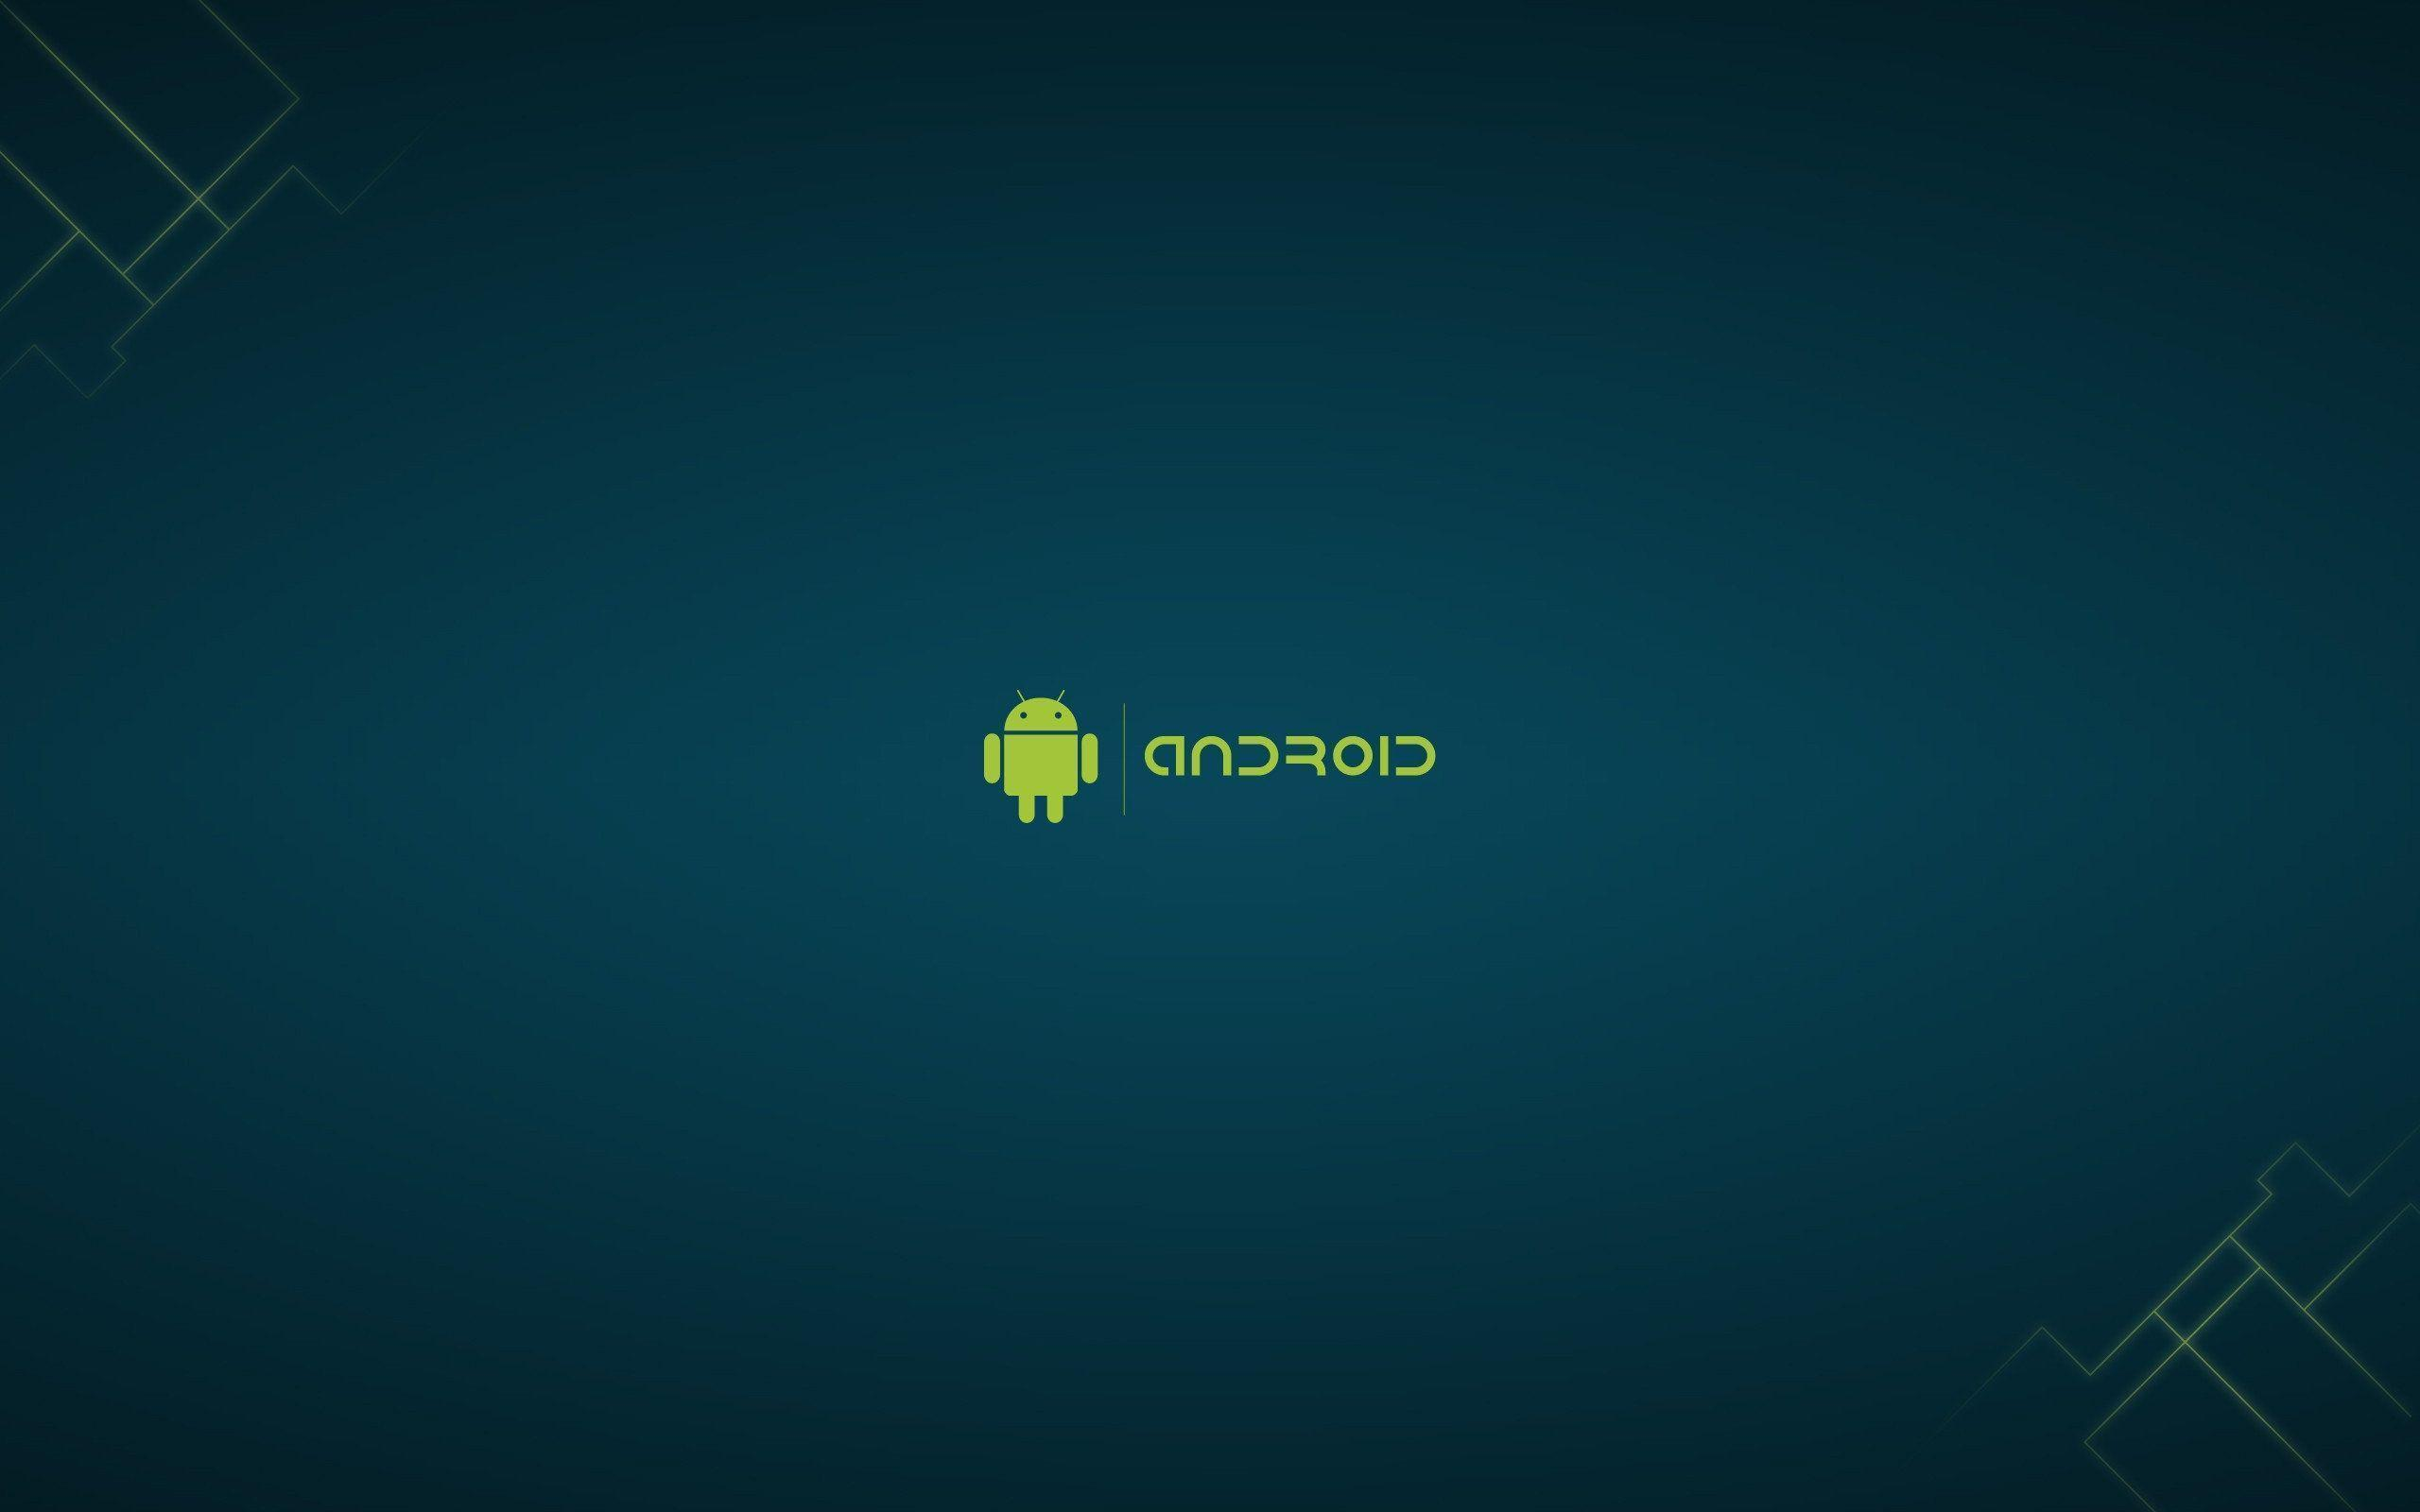 Android Backgrounds: Android Logo Wallpapers